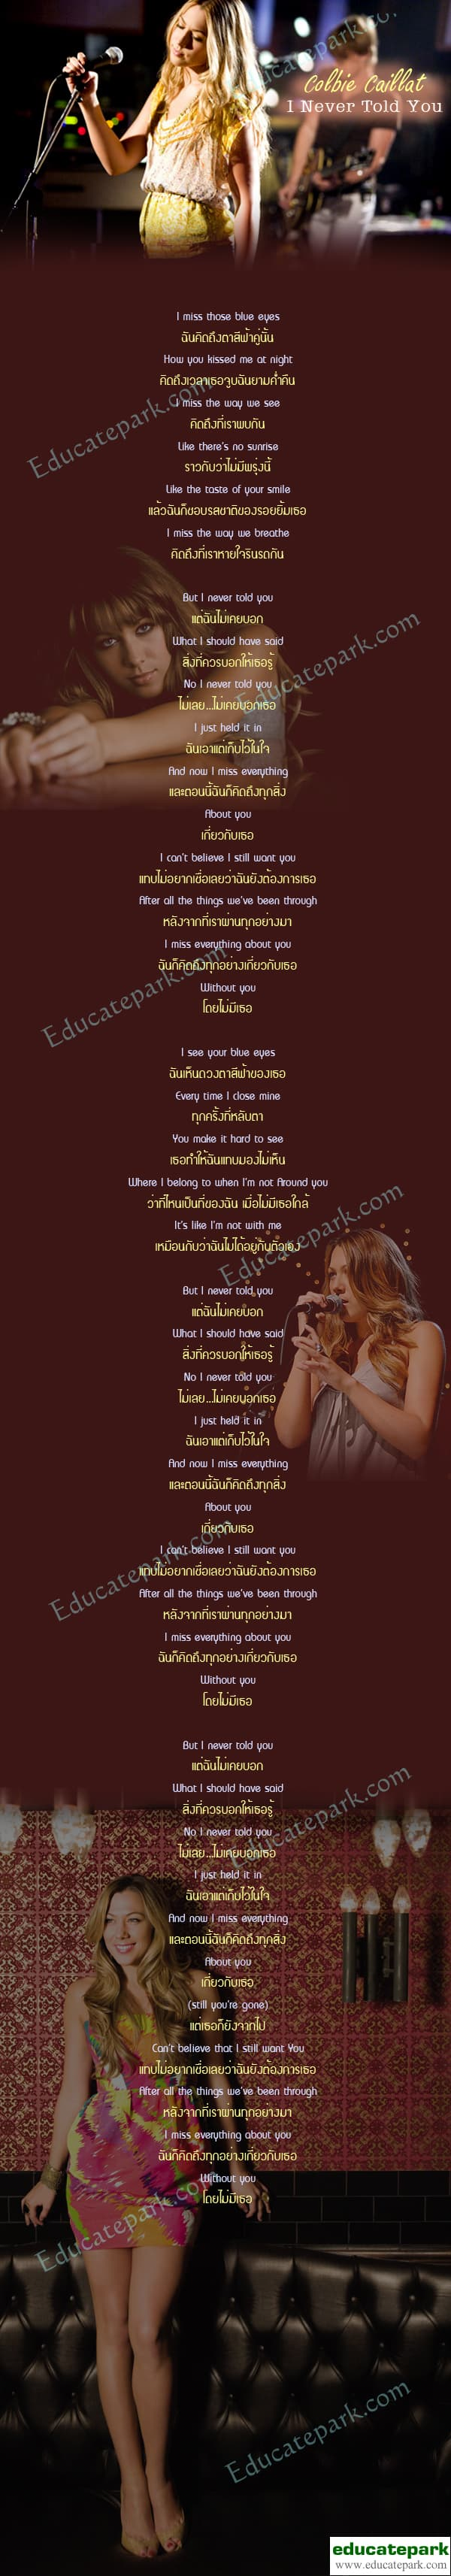 แปลเพลง I Never Told You - Colbie  Caillat